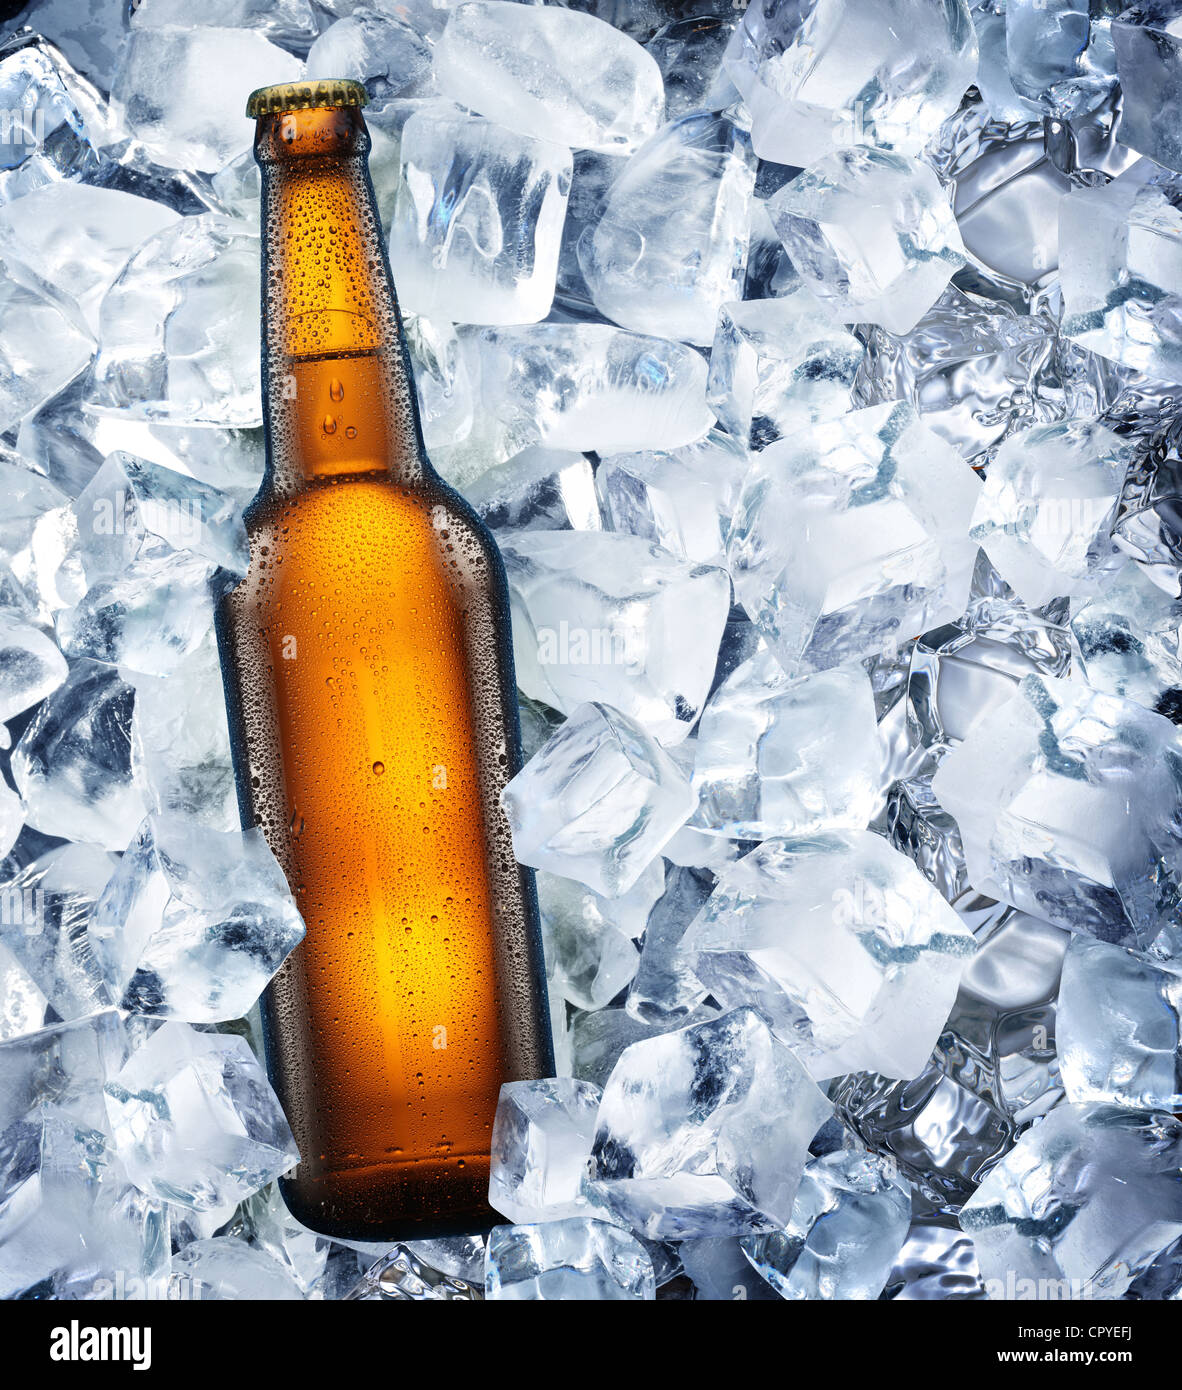 Bottle of beer is in ice - Stock Image